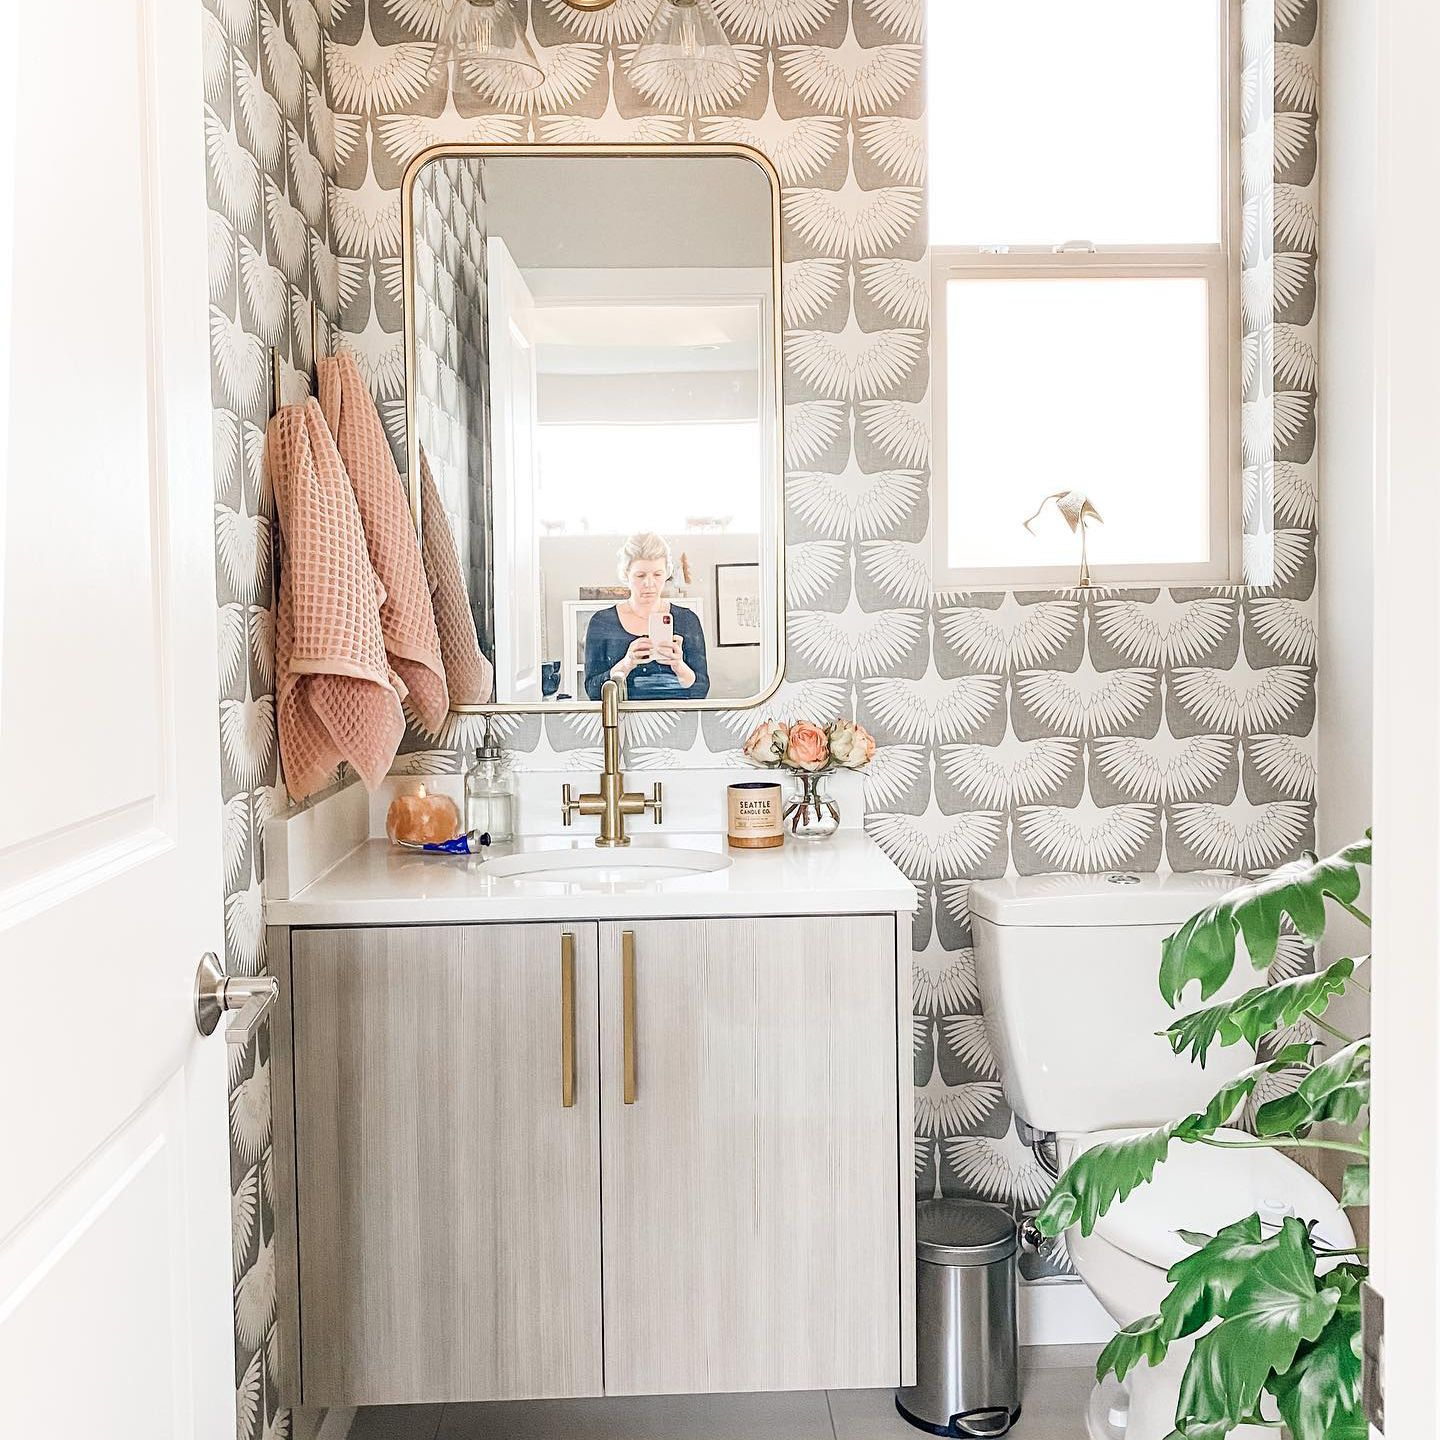 Bathroom Remodel Before And After Removable Wallpaper Small Bathroom Remodel Flock Wallpaper